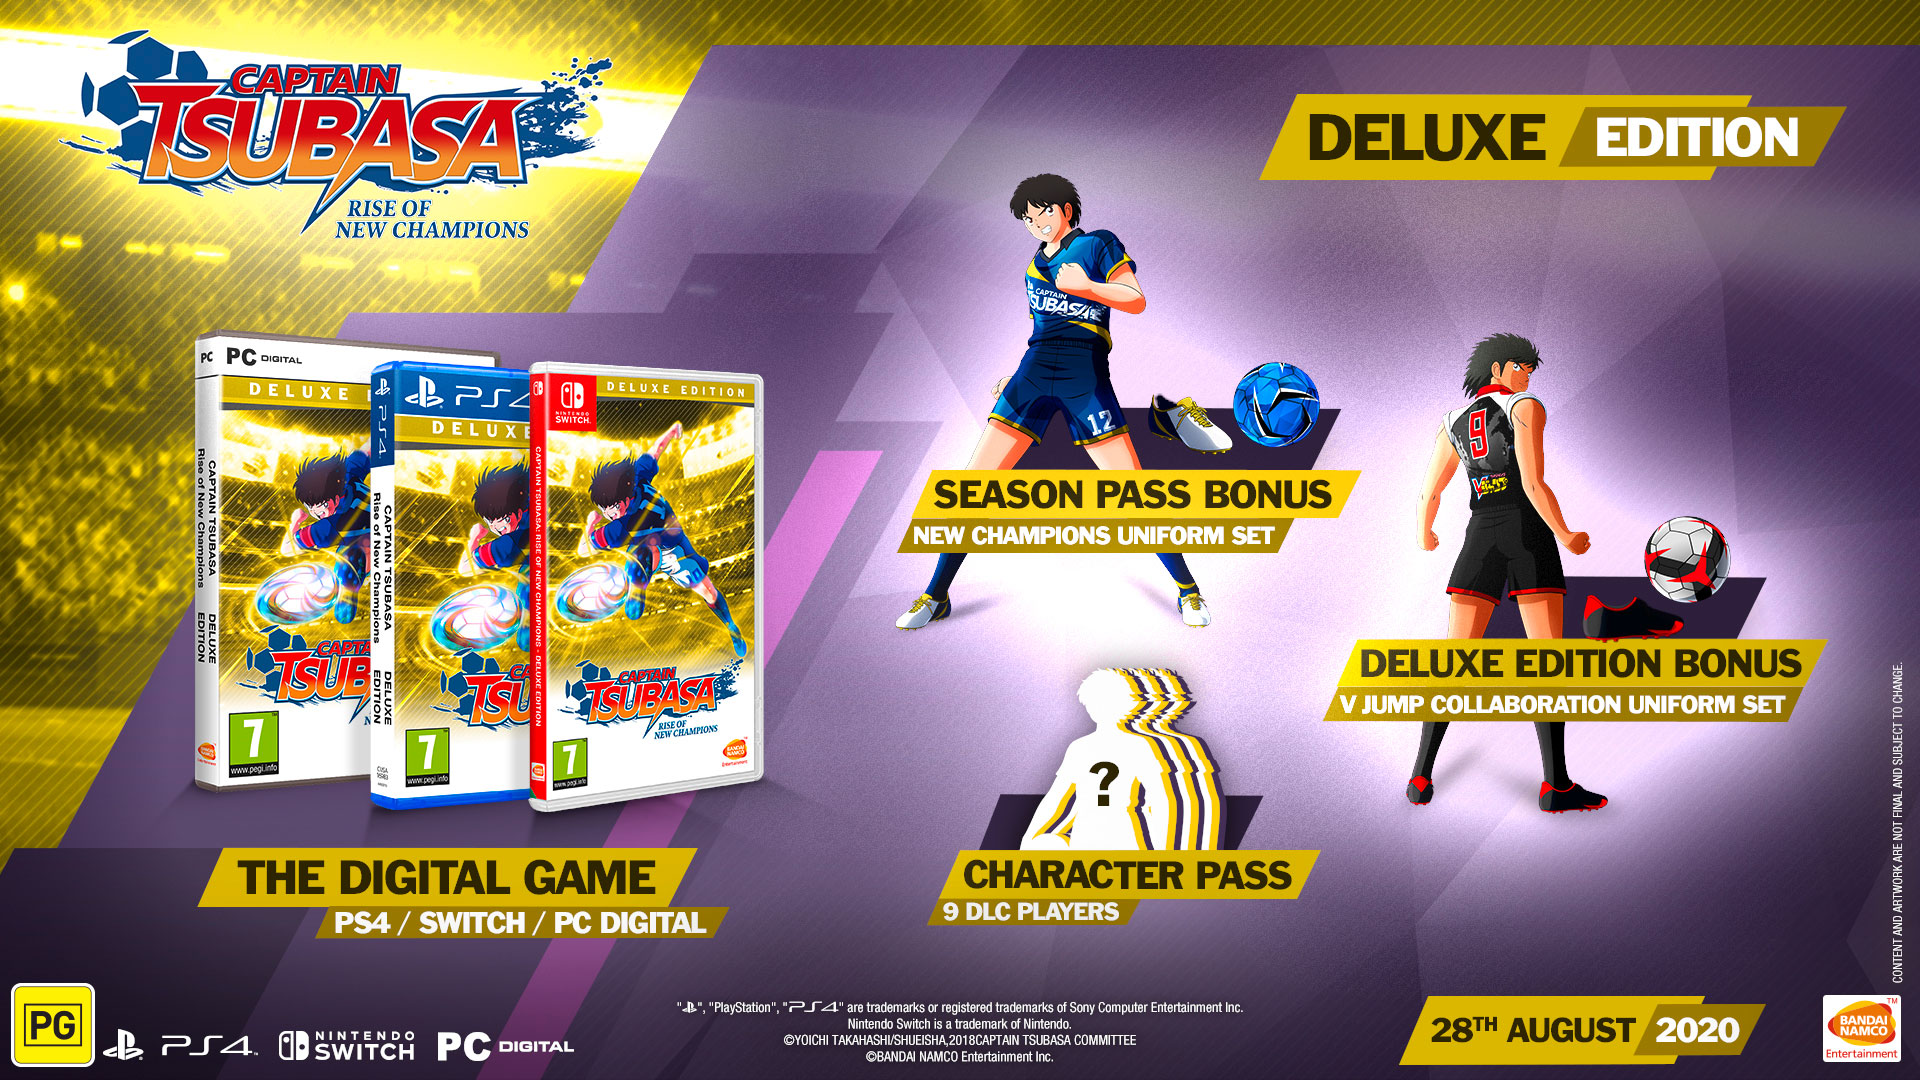 Captain Tsubasa Rise of New Champions Deluxe Edition